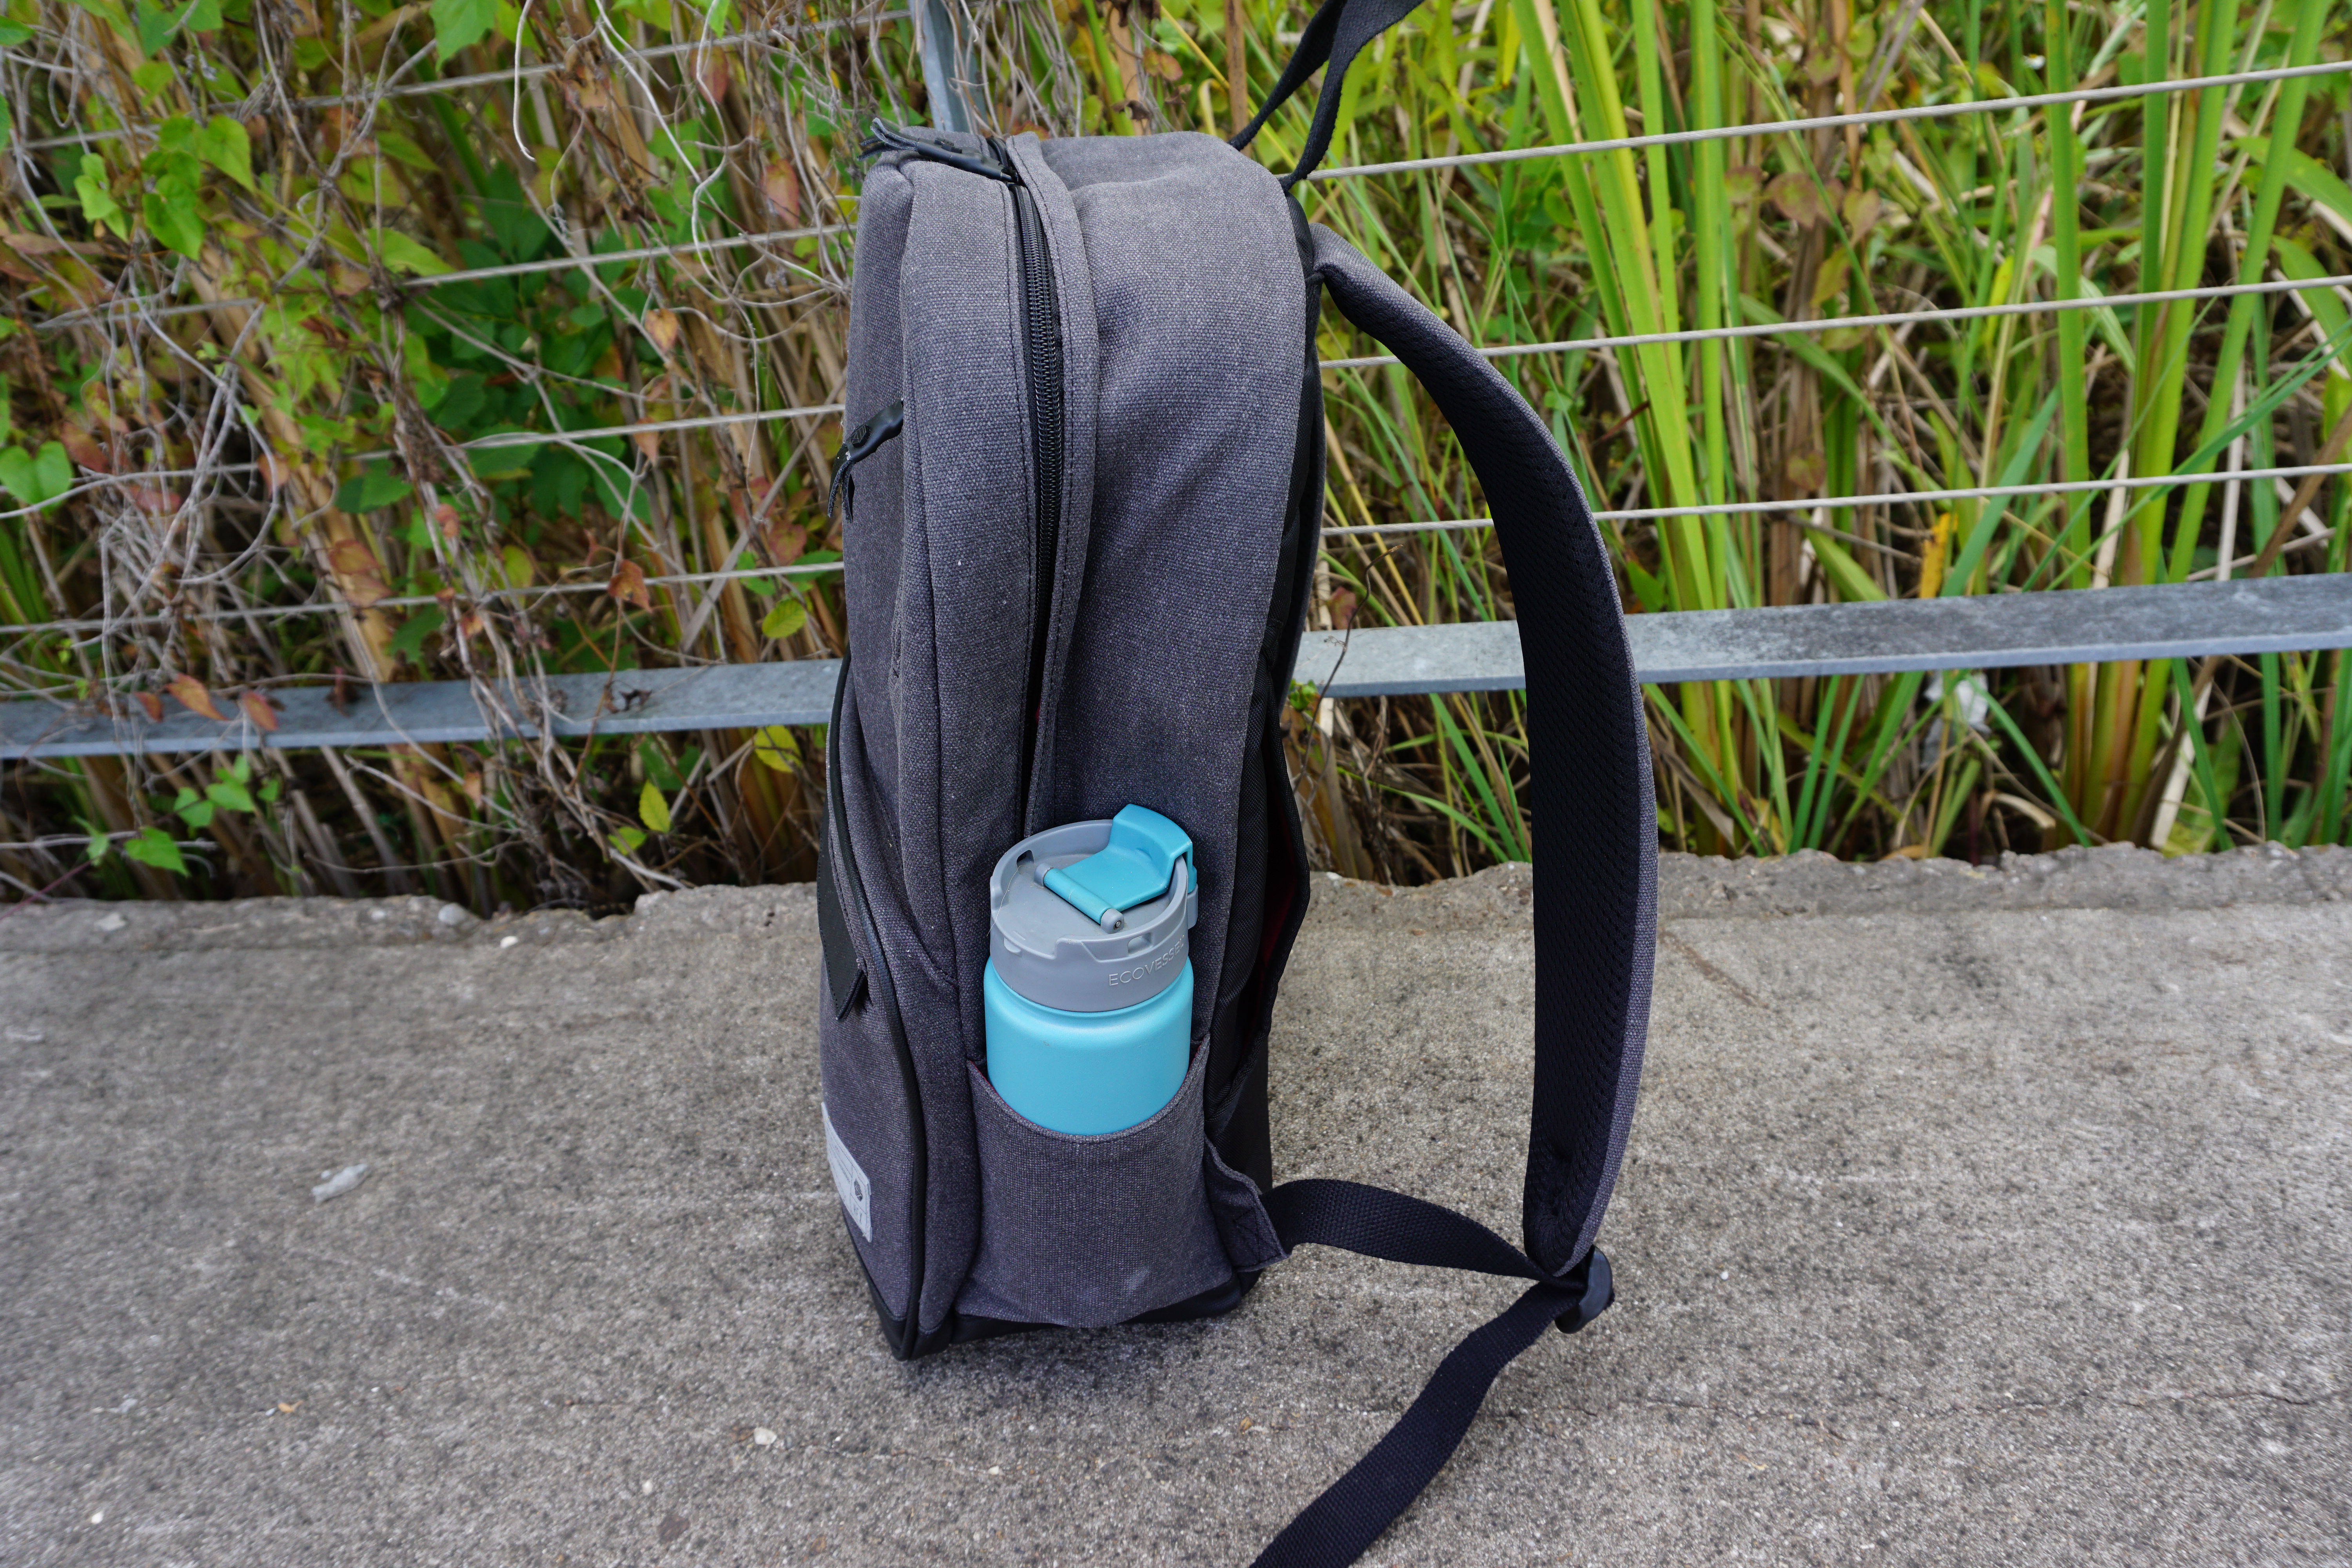 hex brand supply signal backpack review side view bottle pocket